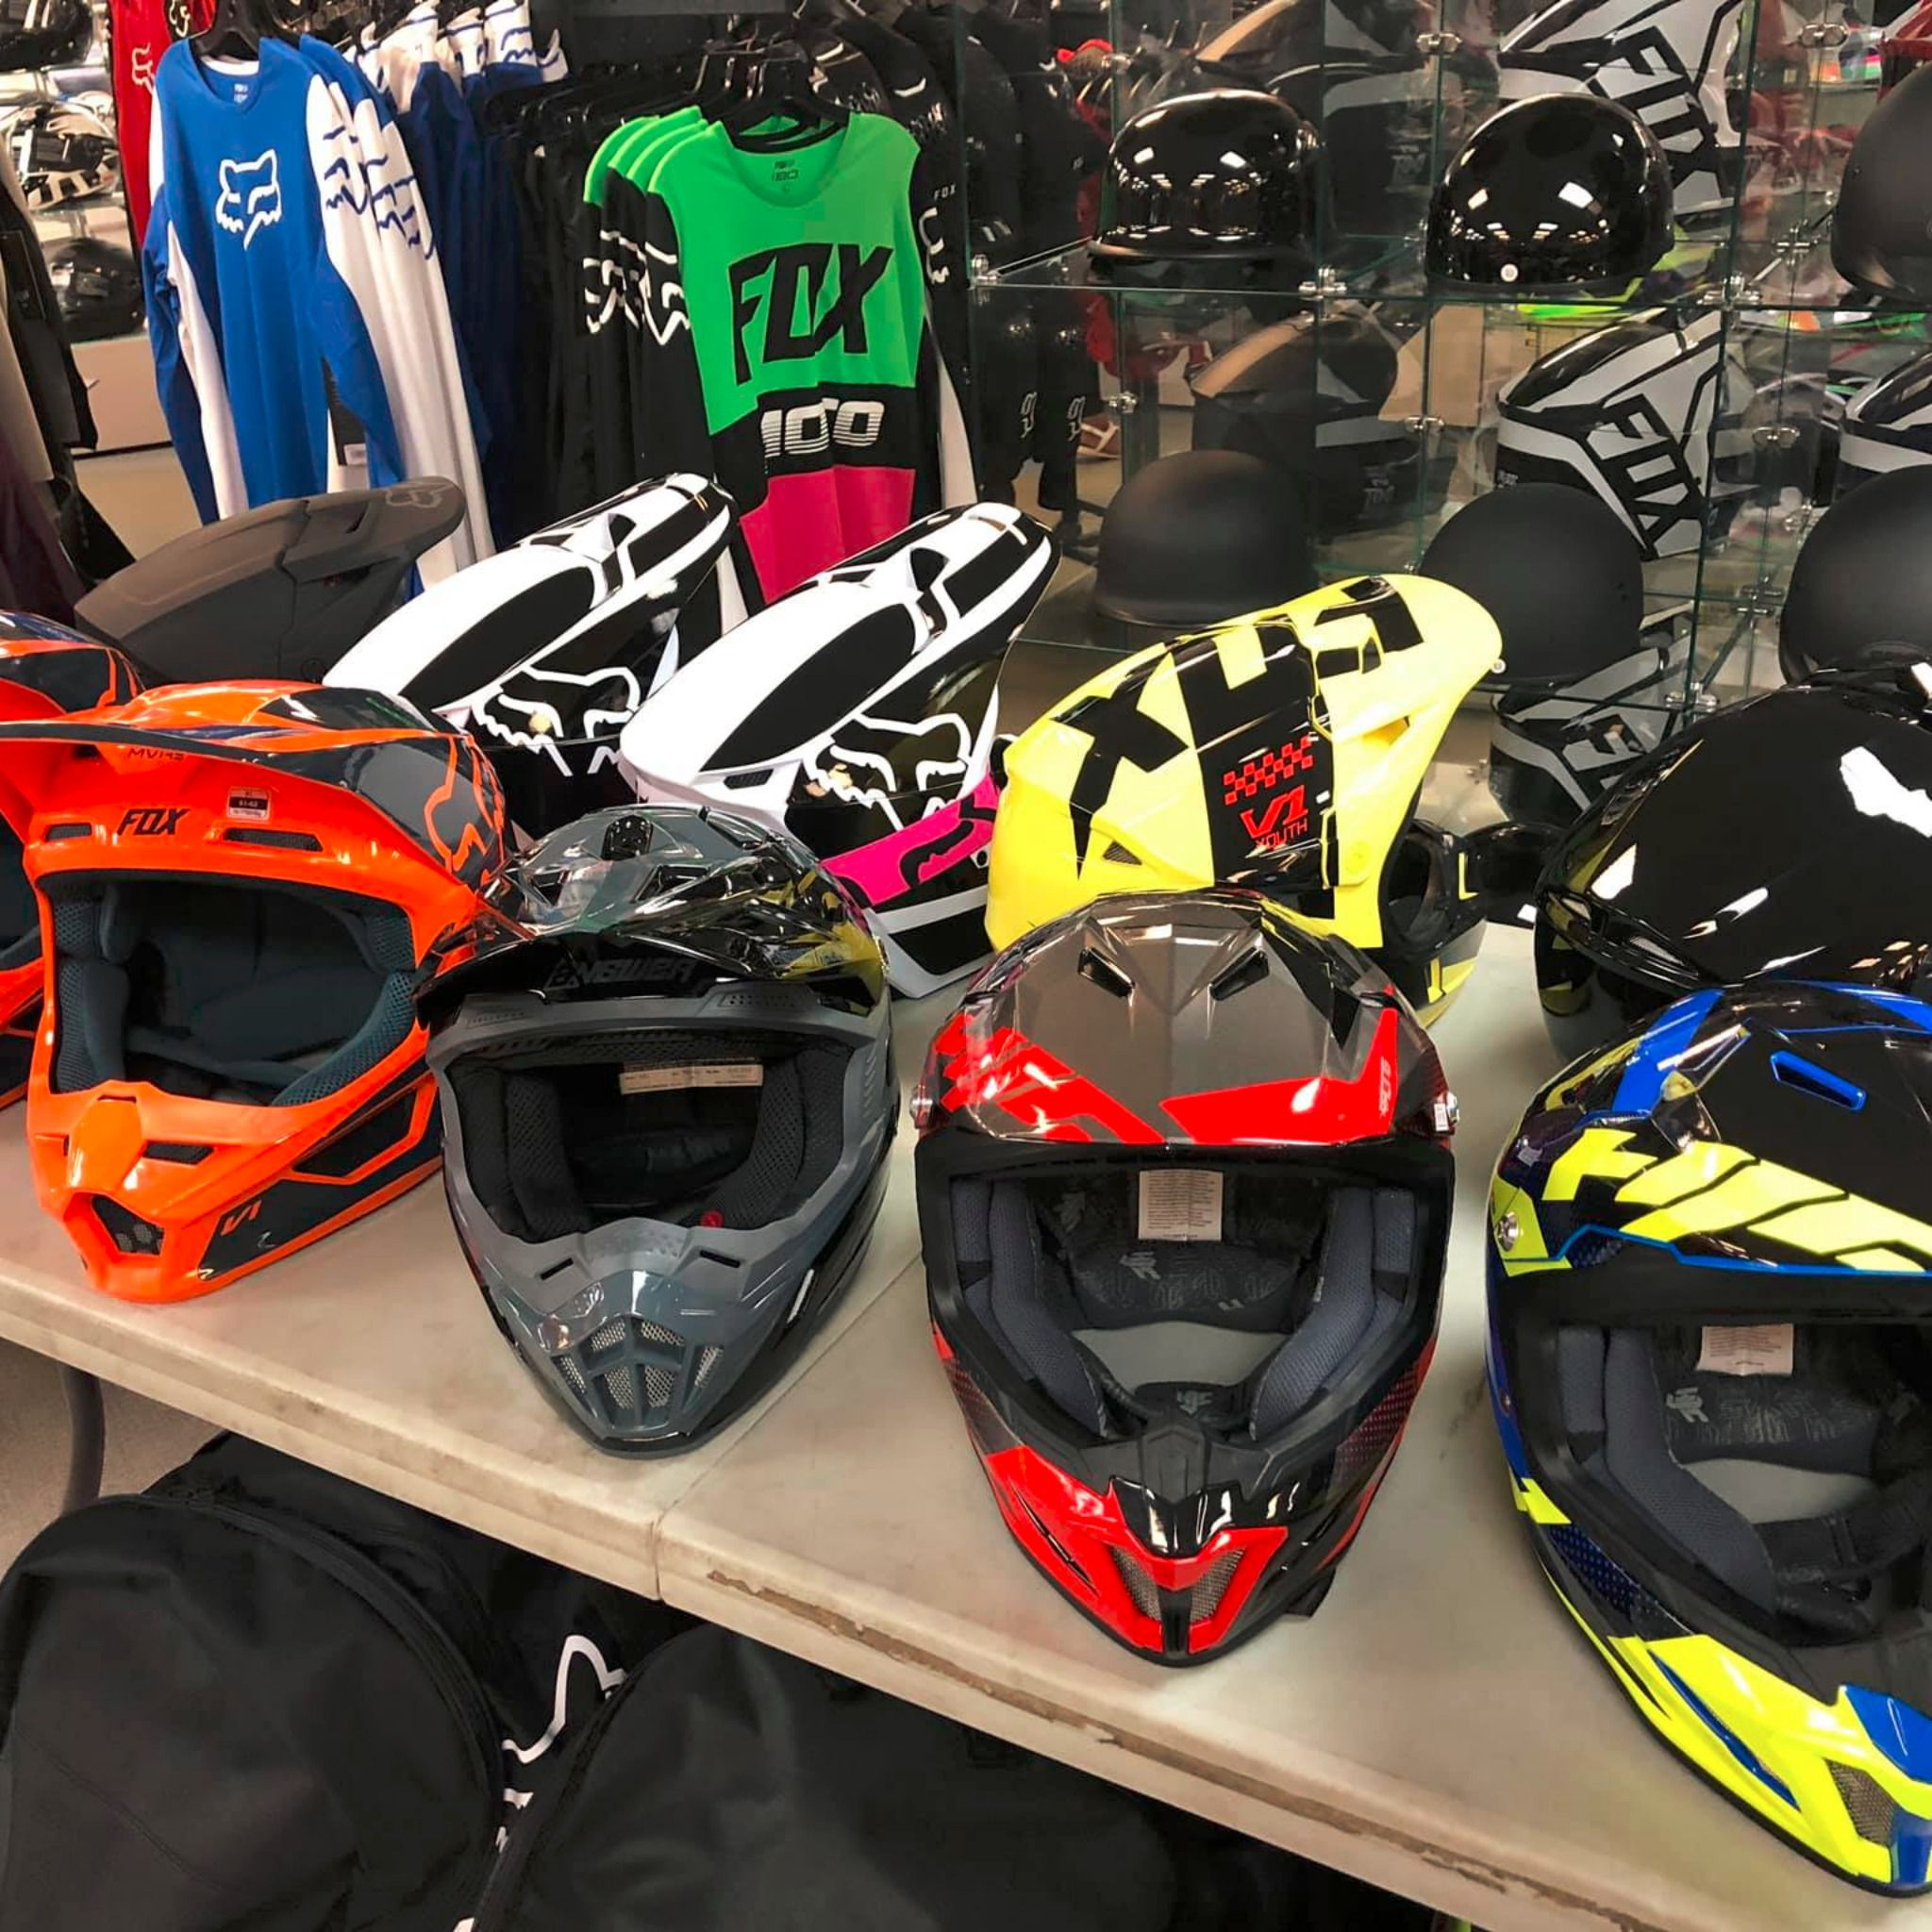 Helmets for your Dirtbike are on sale! 40 OFF New